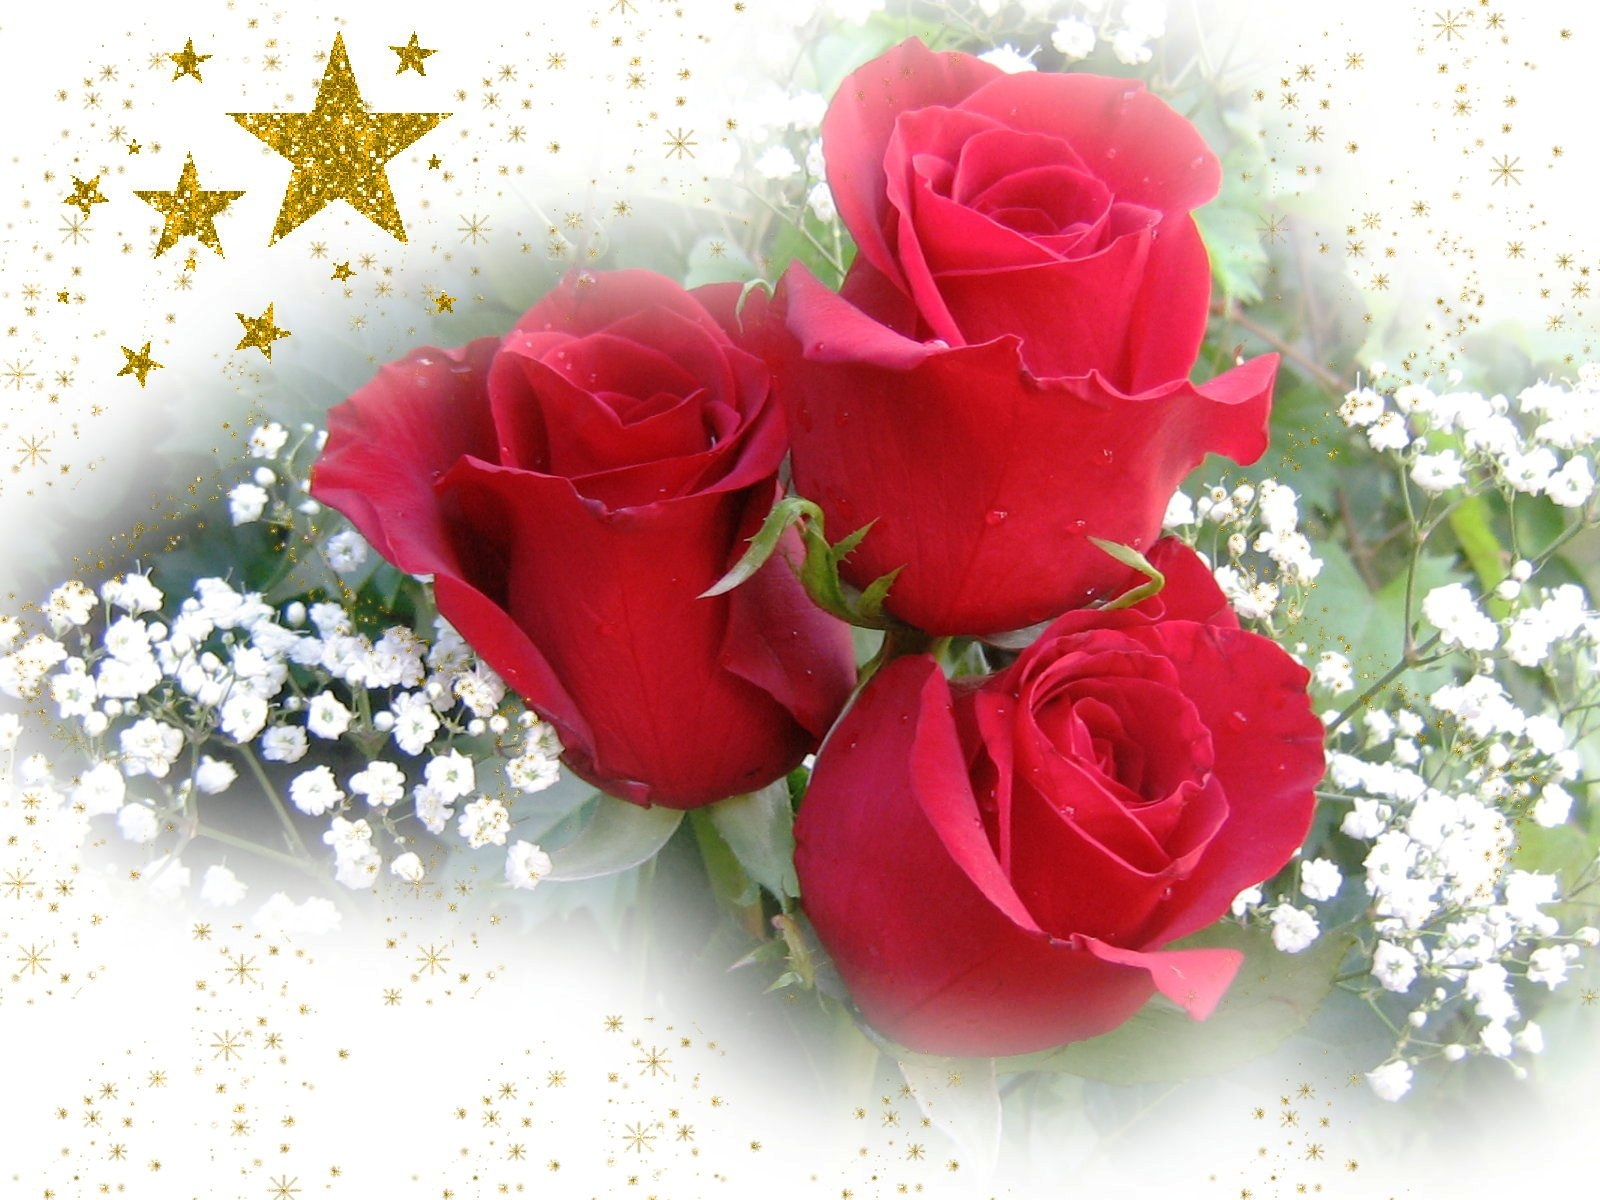 Precious Moments Valentine Wallpaper WallpaperSafari